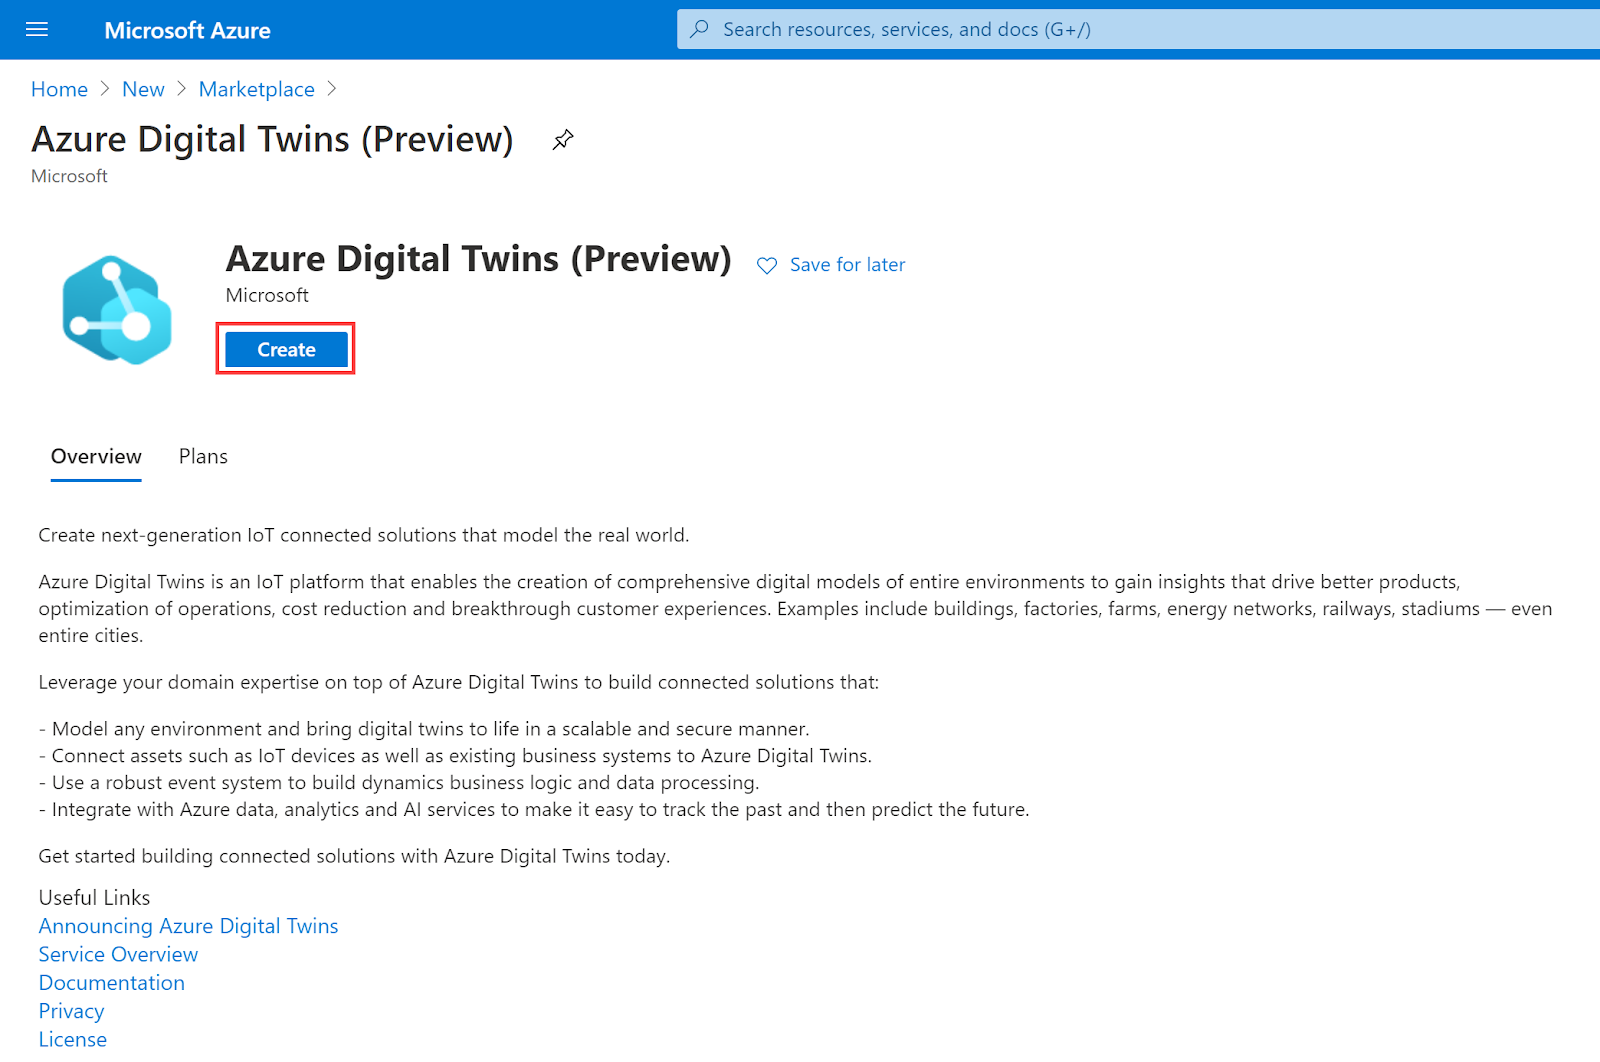 Selecting 'Create' from the Azure Digital Twins service page